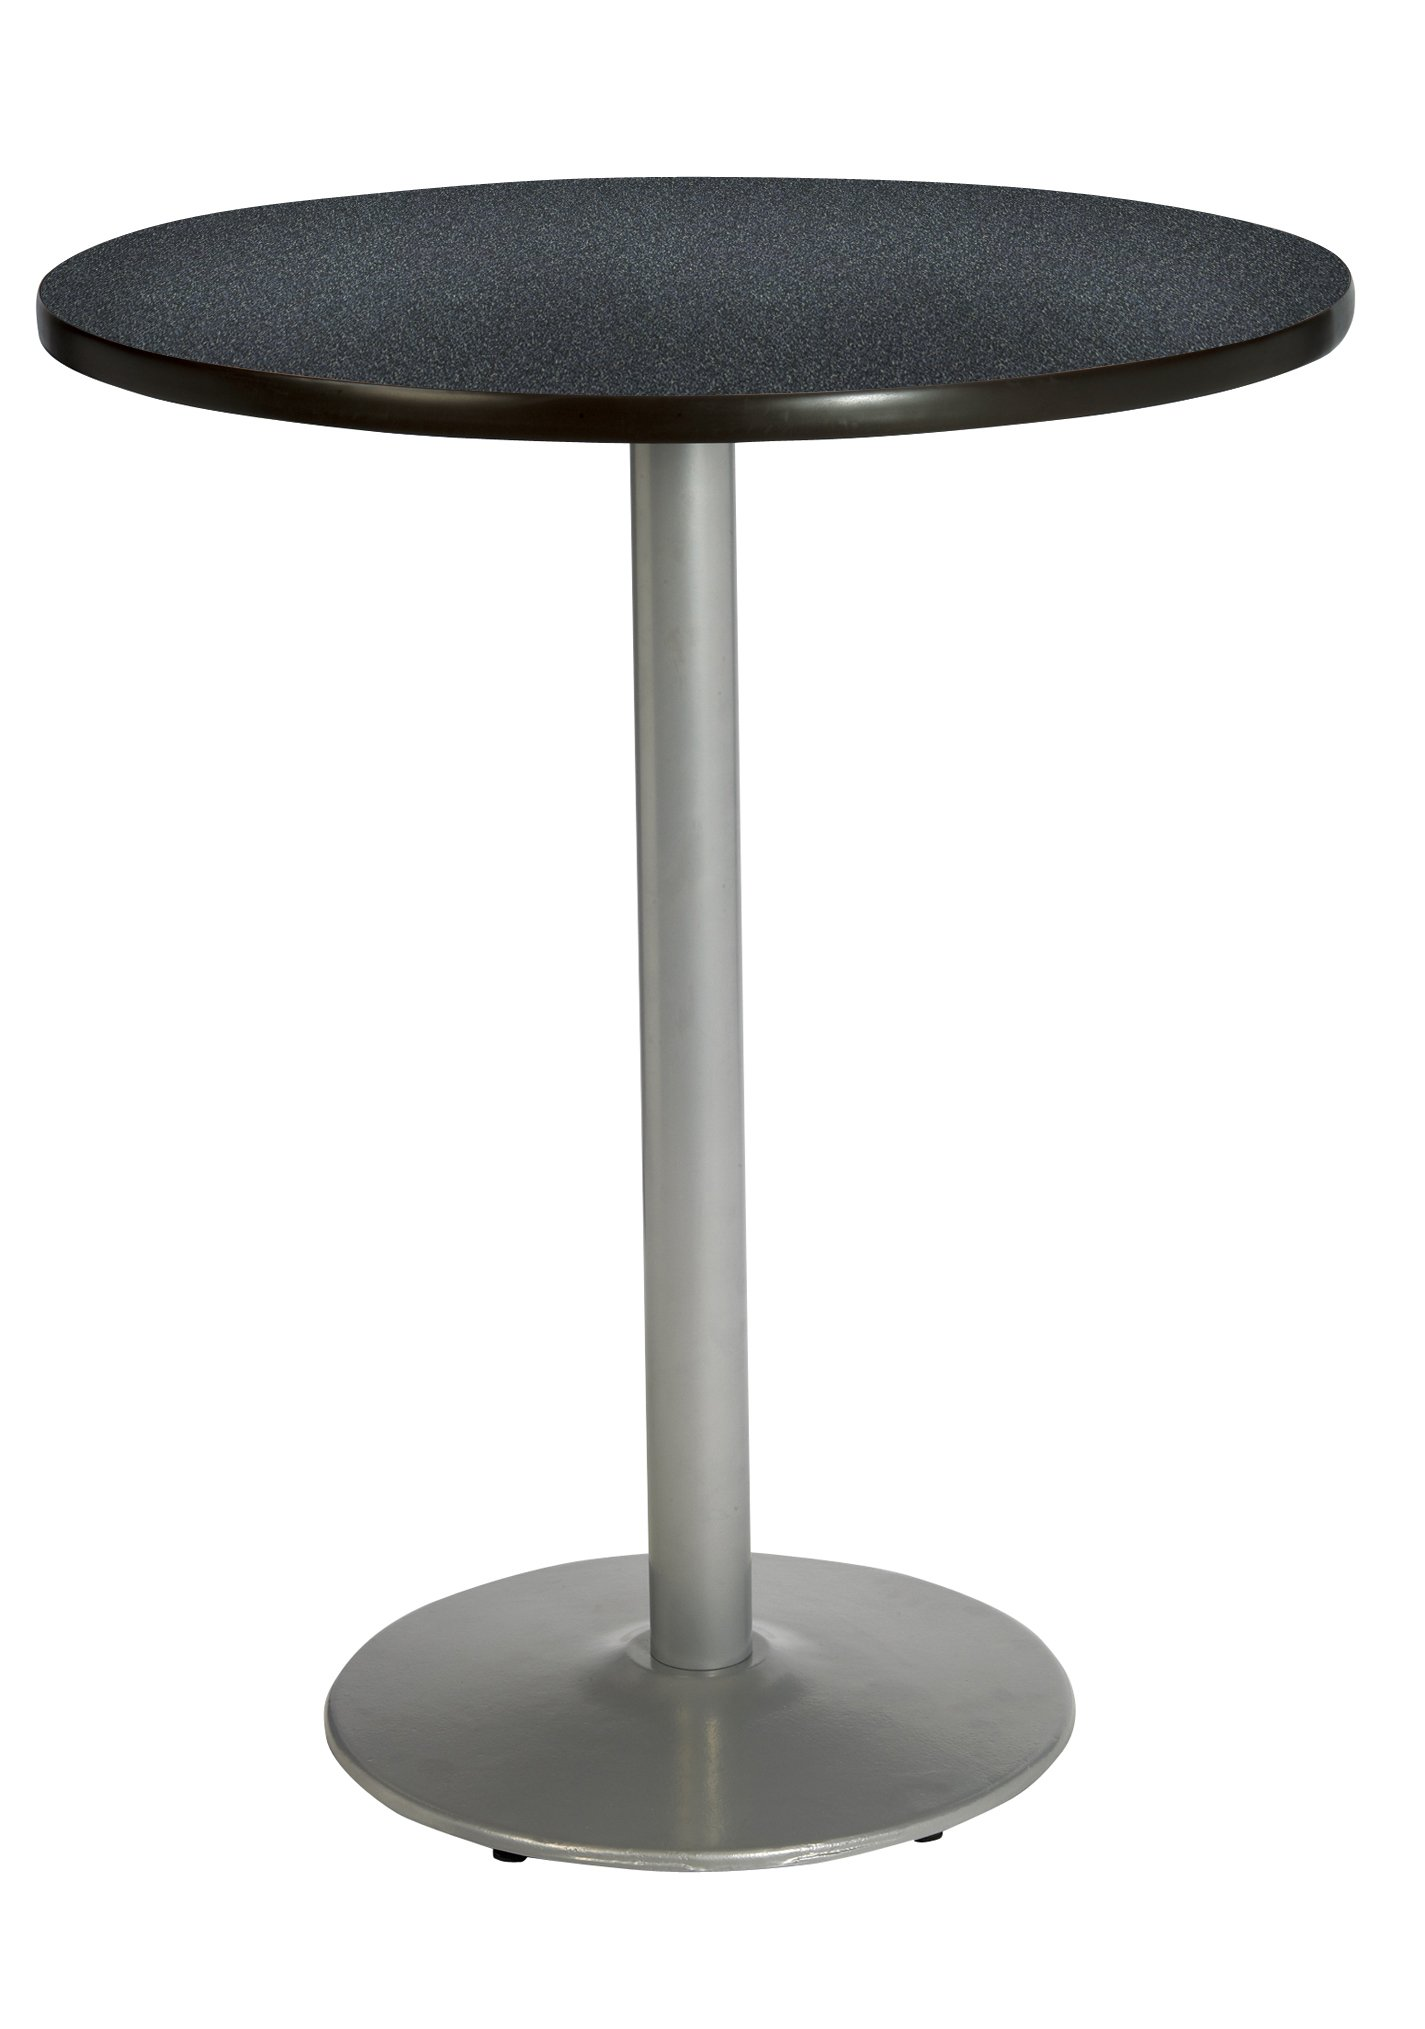 KFI Seating Round Bar Height Pedestal Table with Round Silver Base, Commercial Grade, 36-Inch, Graphite Nebula Laminate, Made in the USA